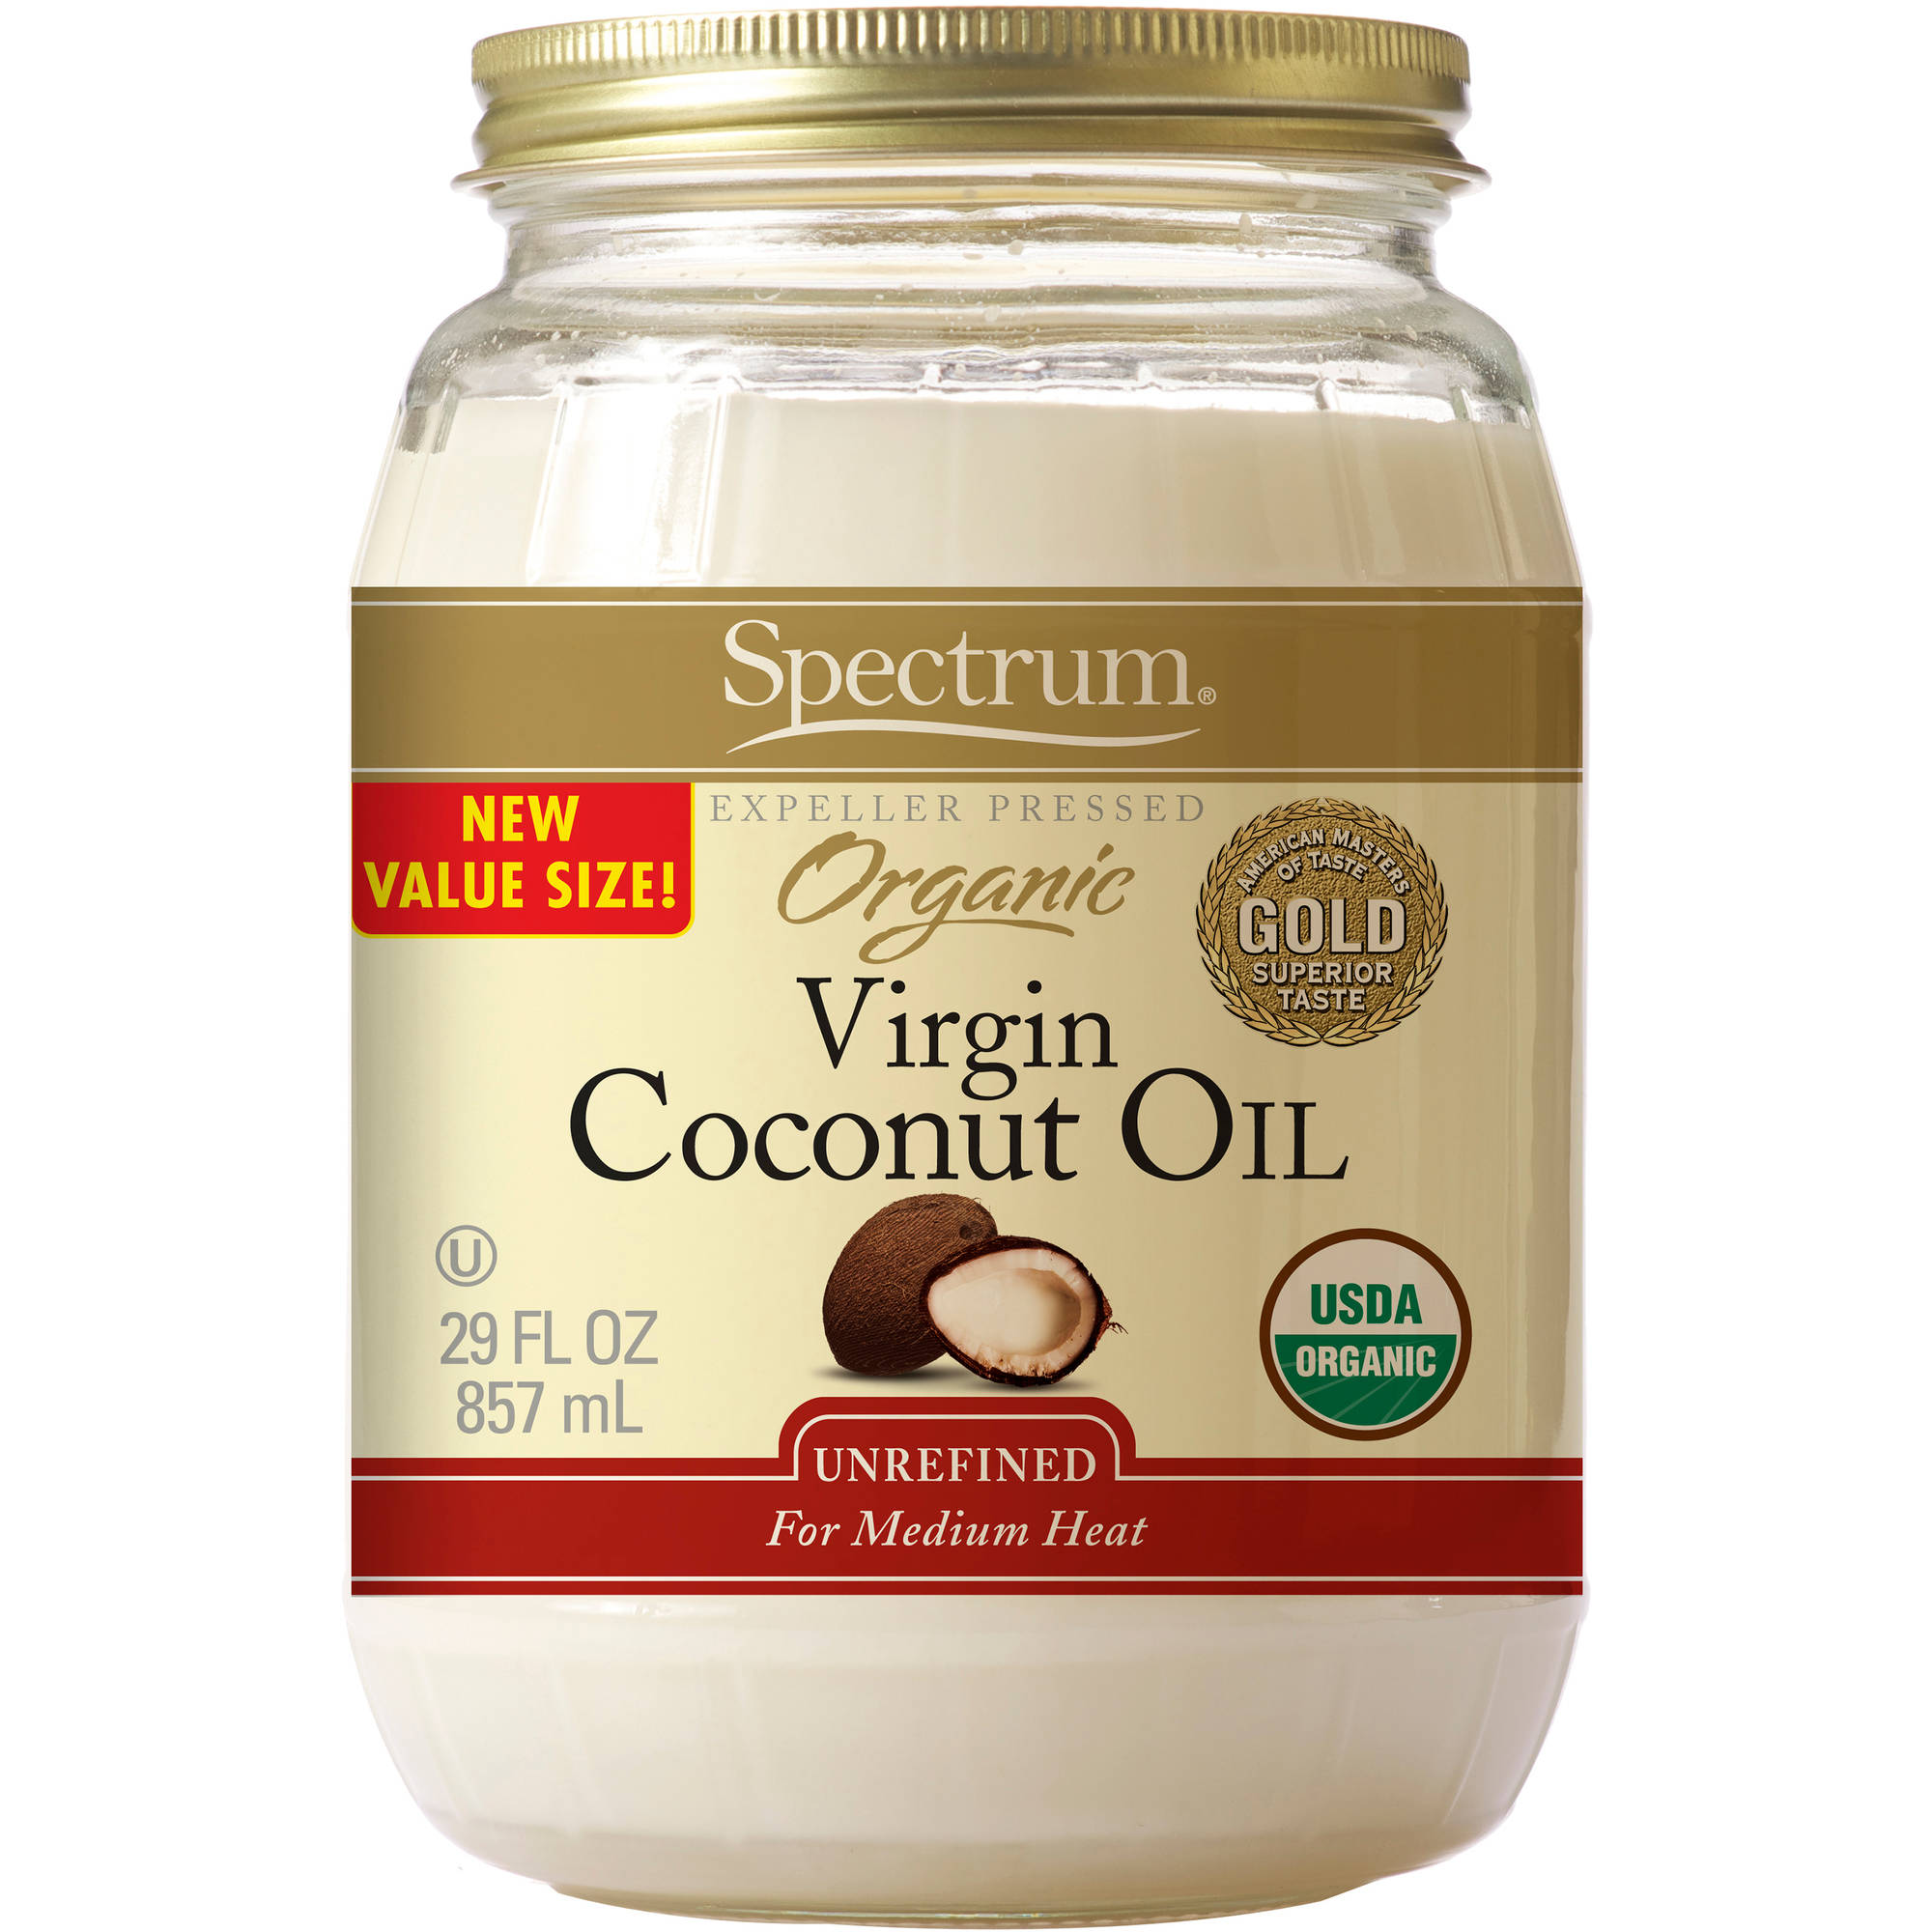 Spectrum Organic Virgin Coconut Oil, 29 fl oz